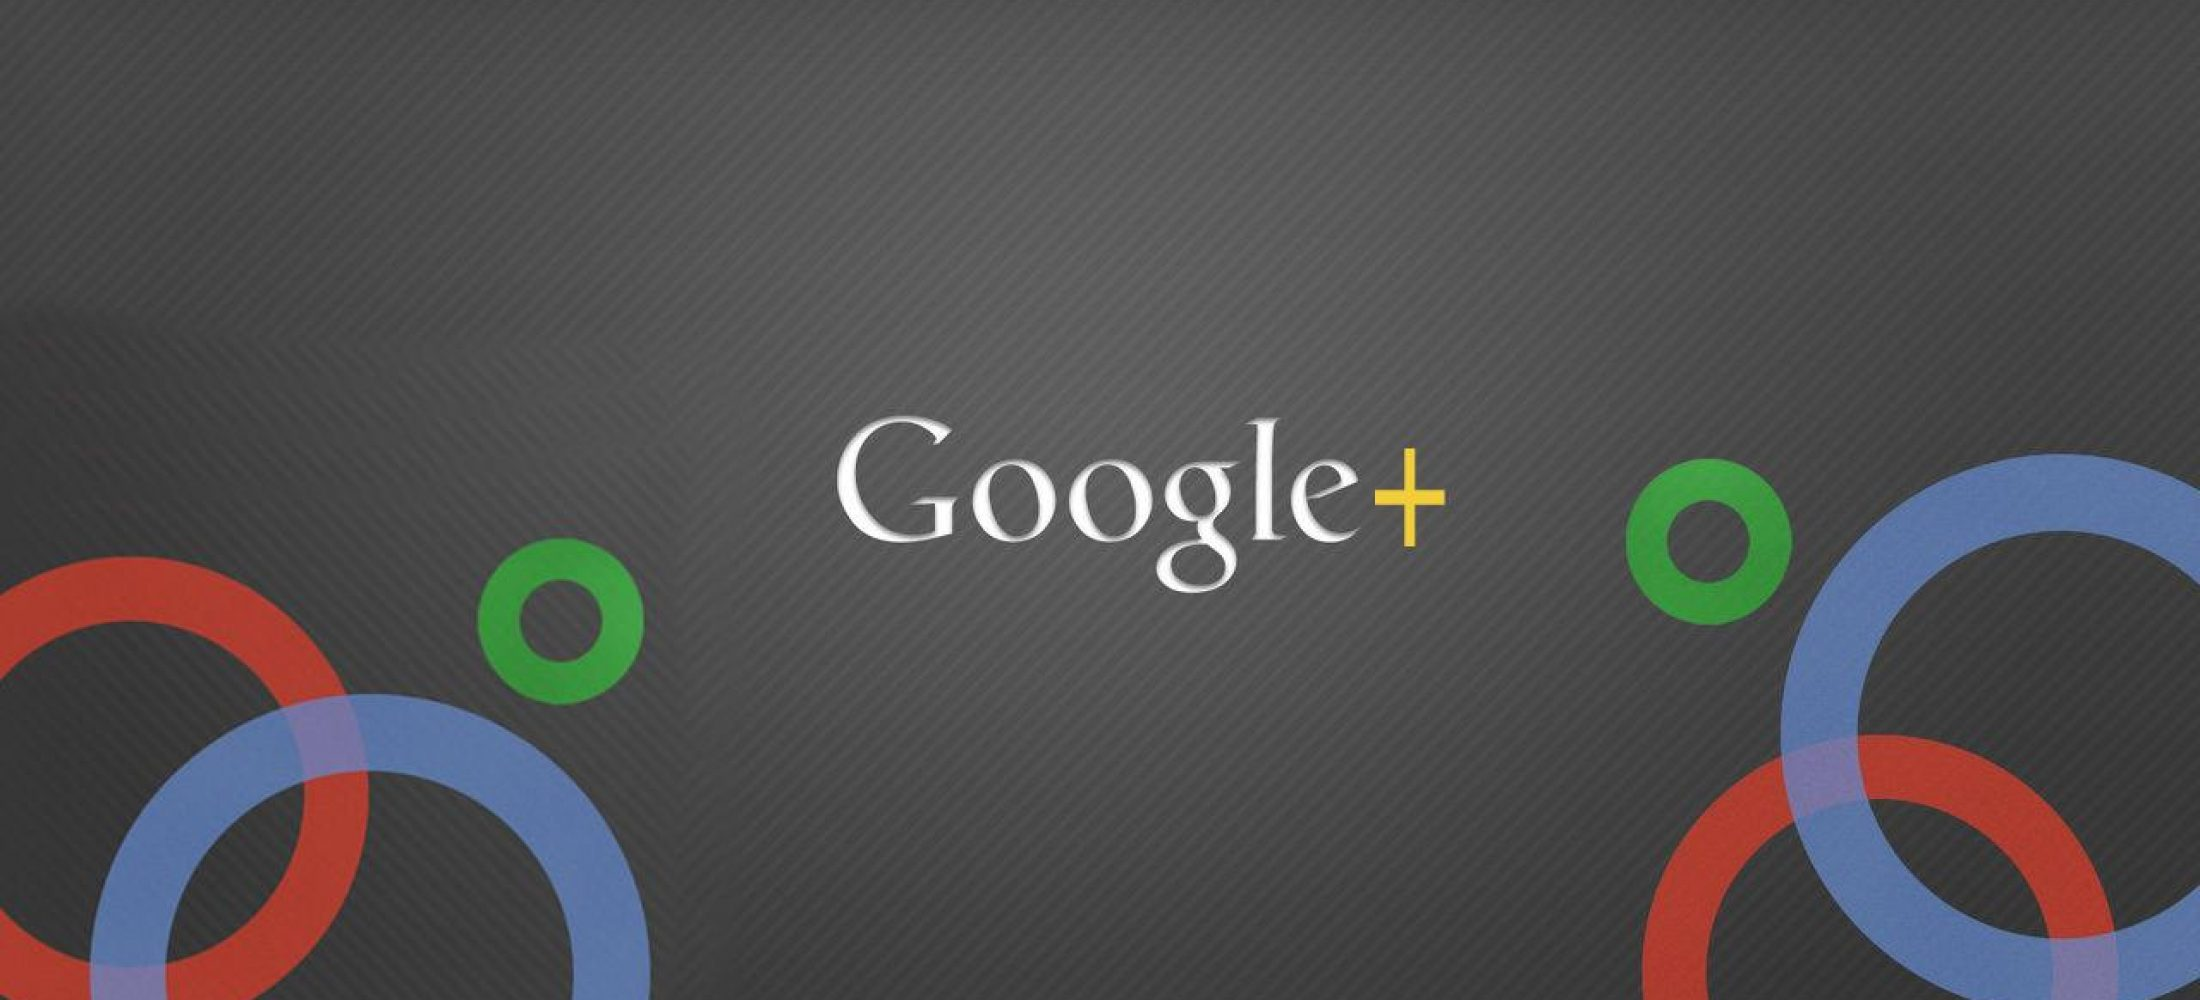 Google's Changes And Controversies